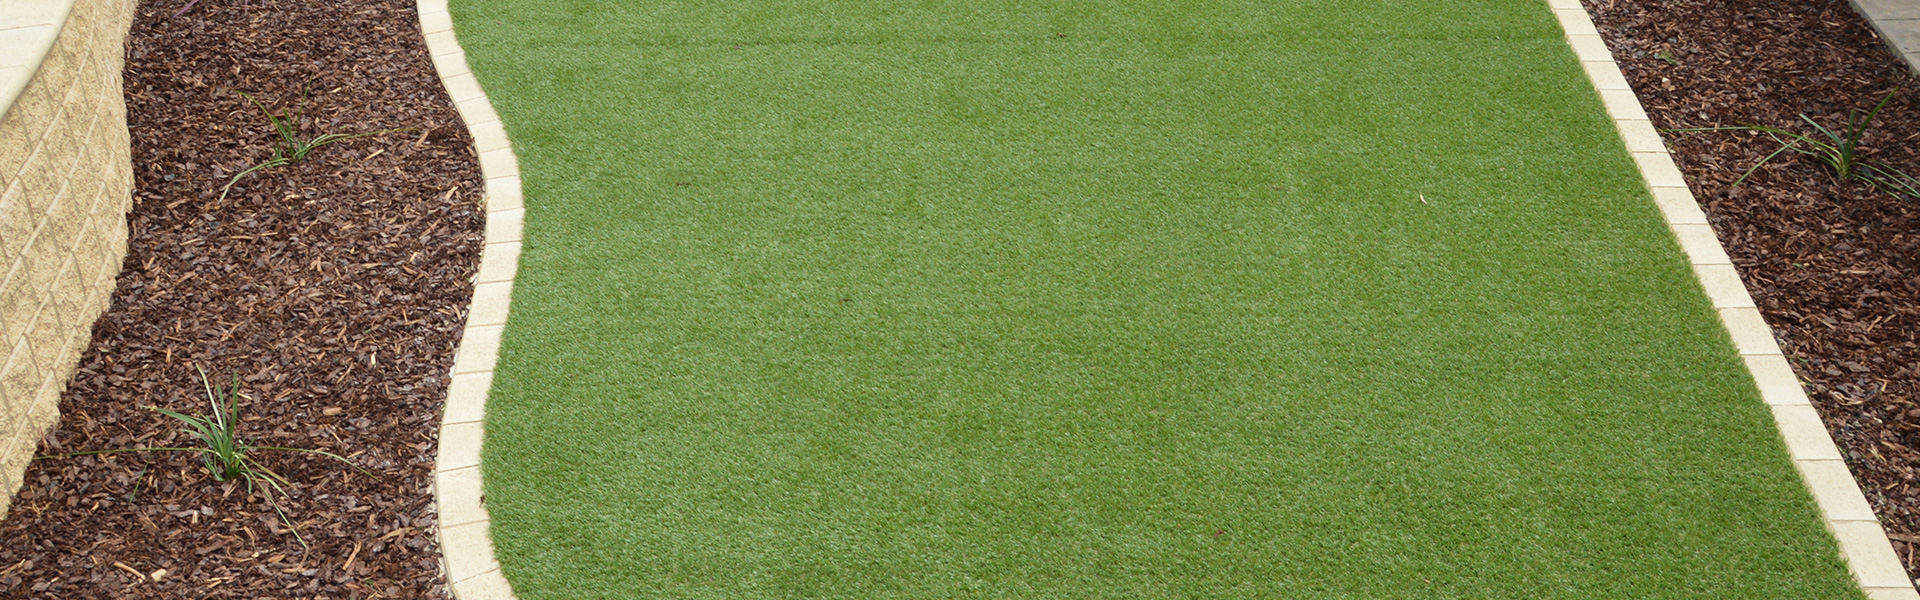 Artificial Grass Adelaide | Visual Landscape Gardening